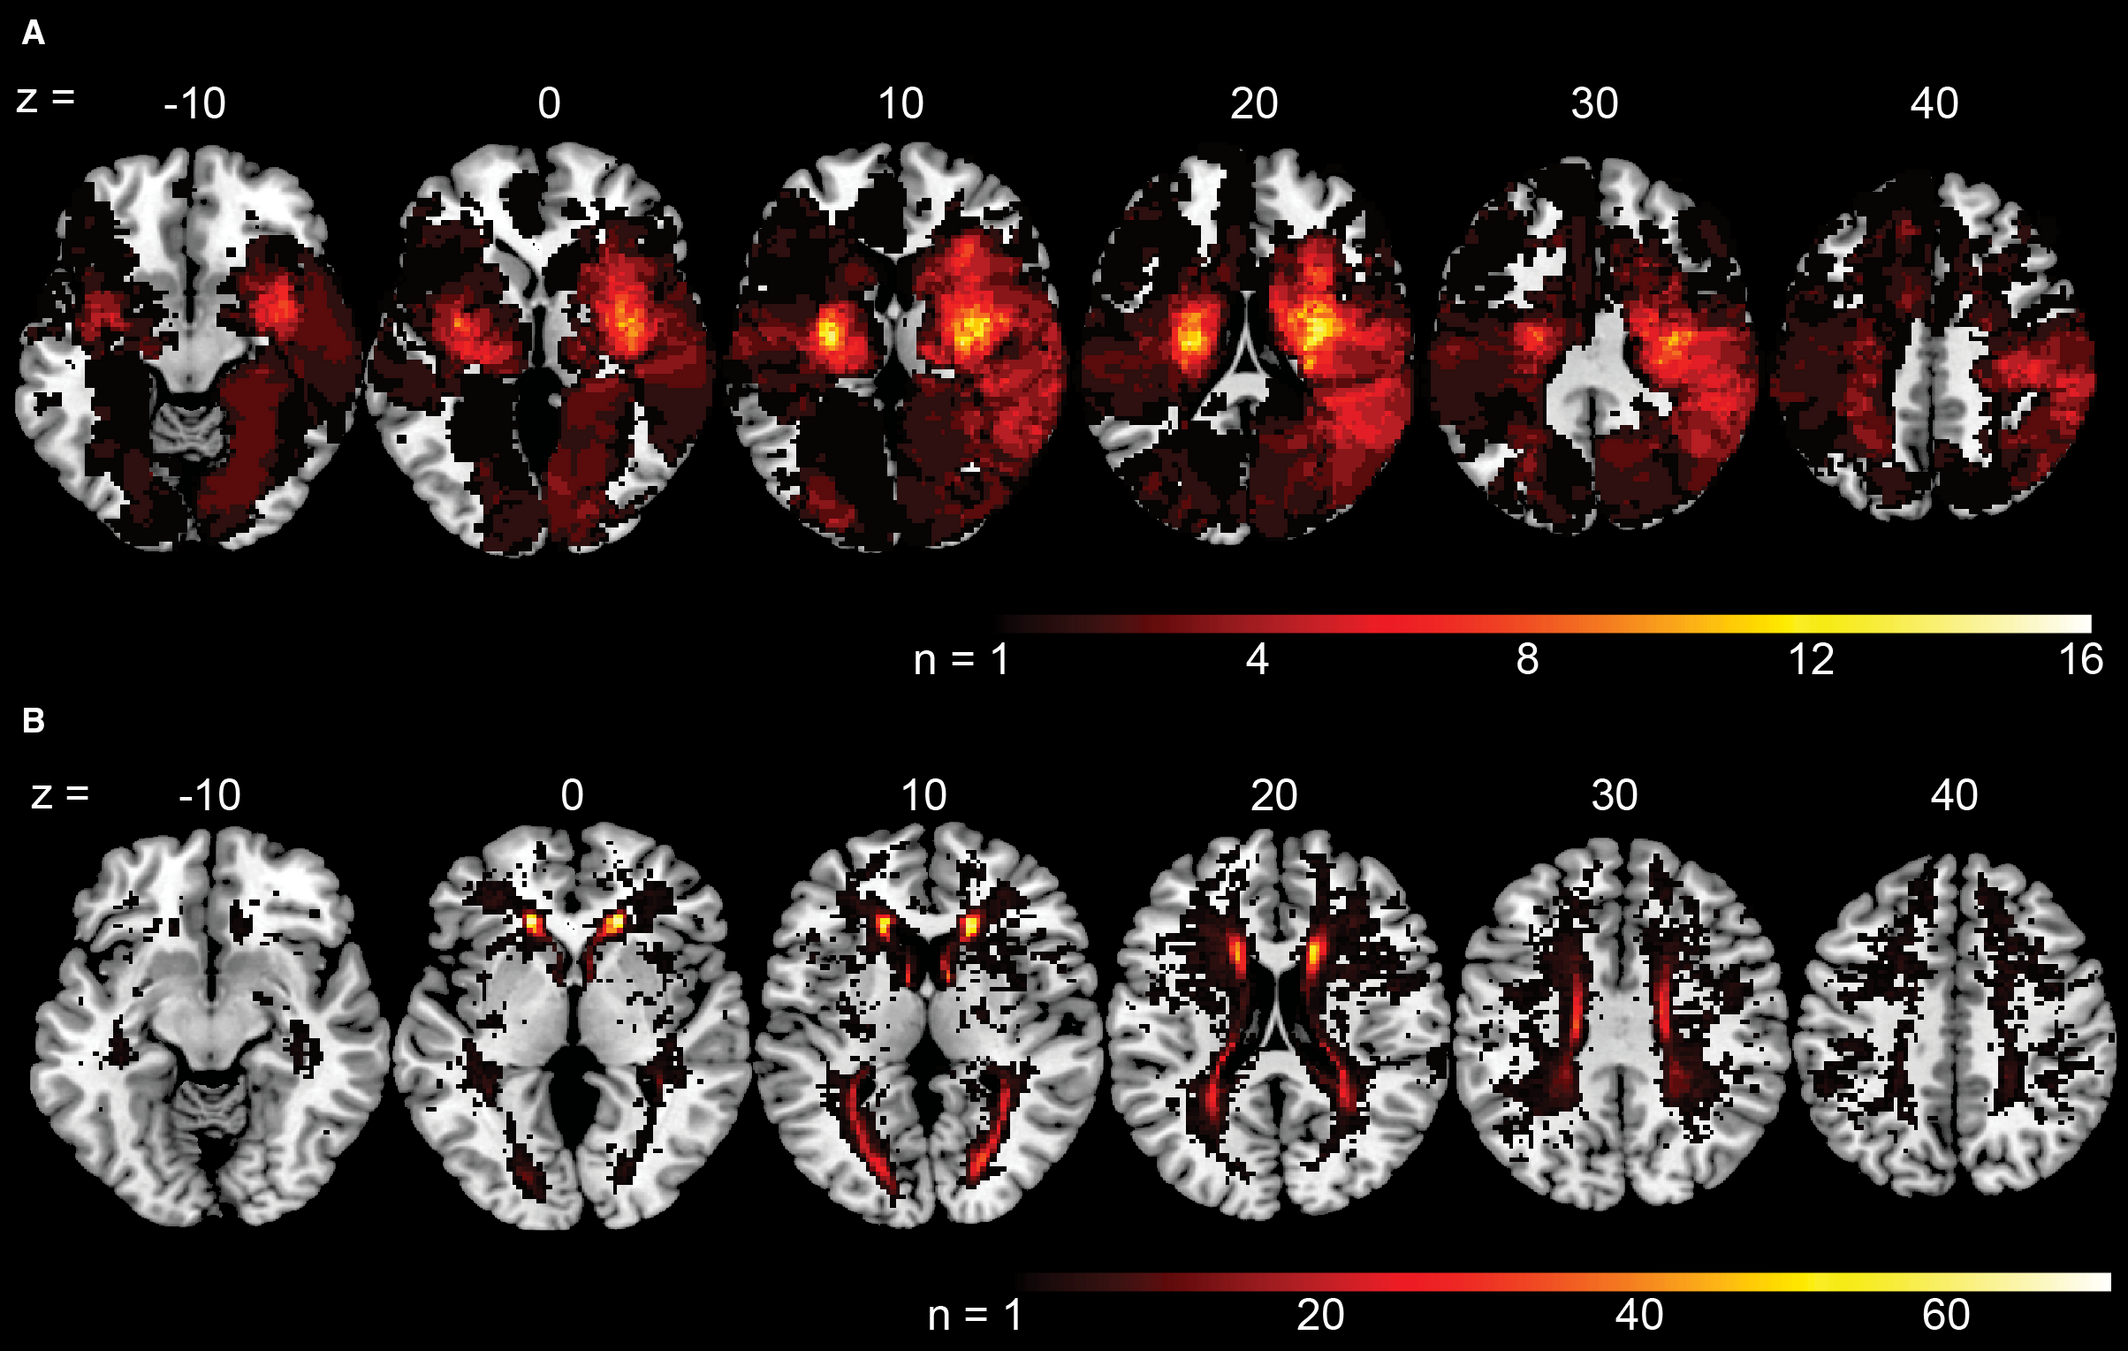 Differential Impact of Acute Lesions Versus White Matter